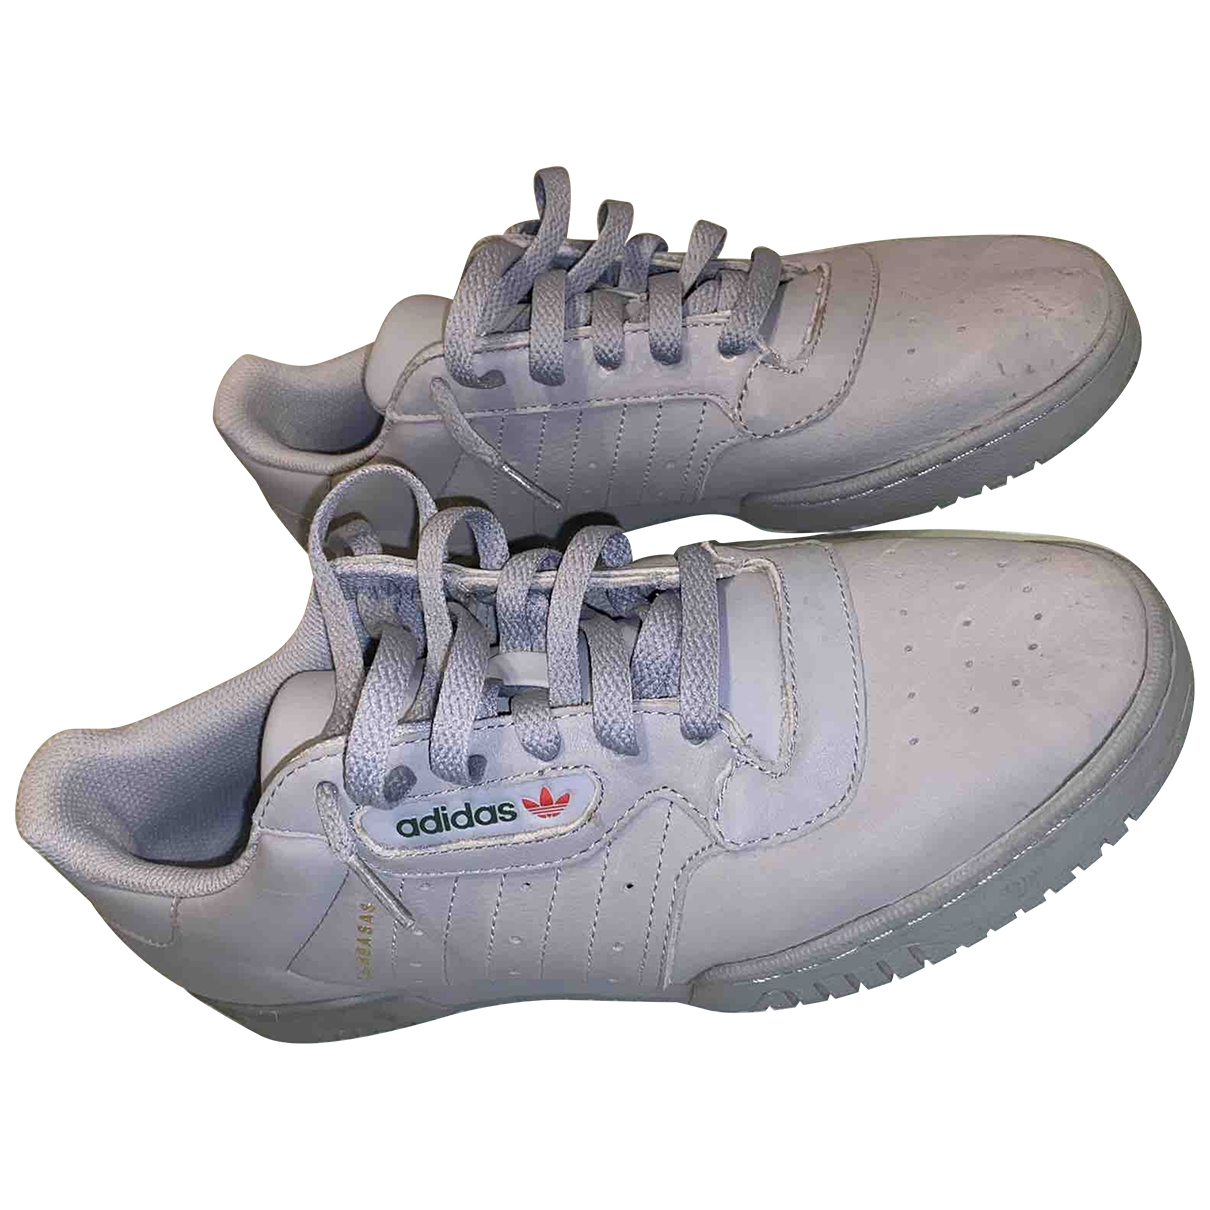 Yeezy X Adidas POWERPHASE Grey Leather Trainers for Men 42.5 EU